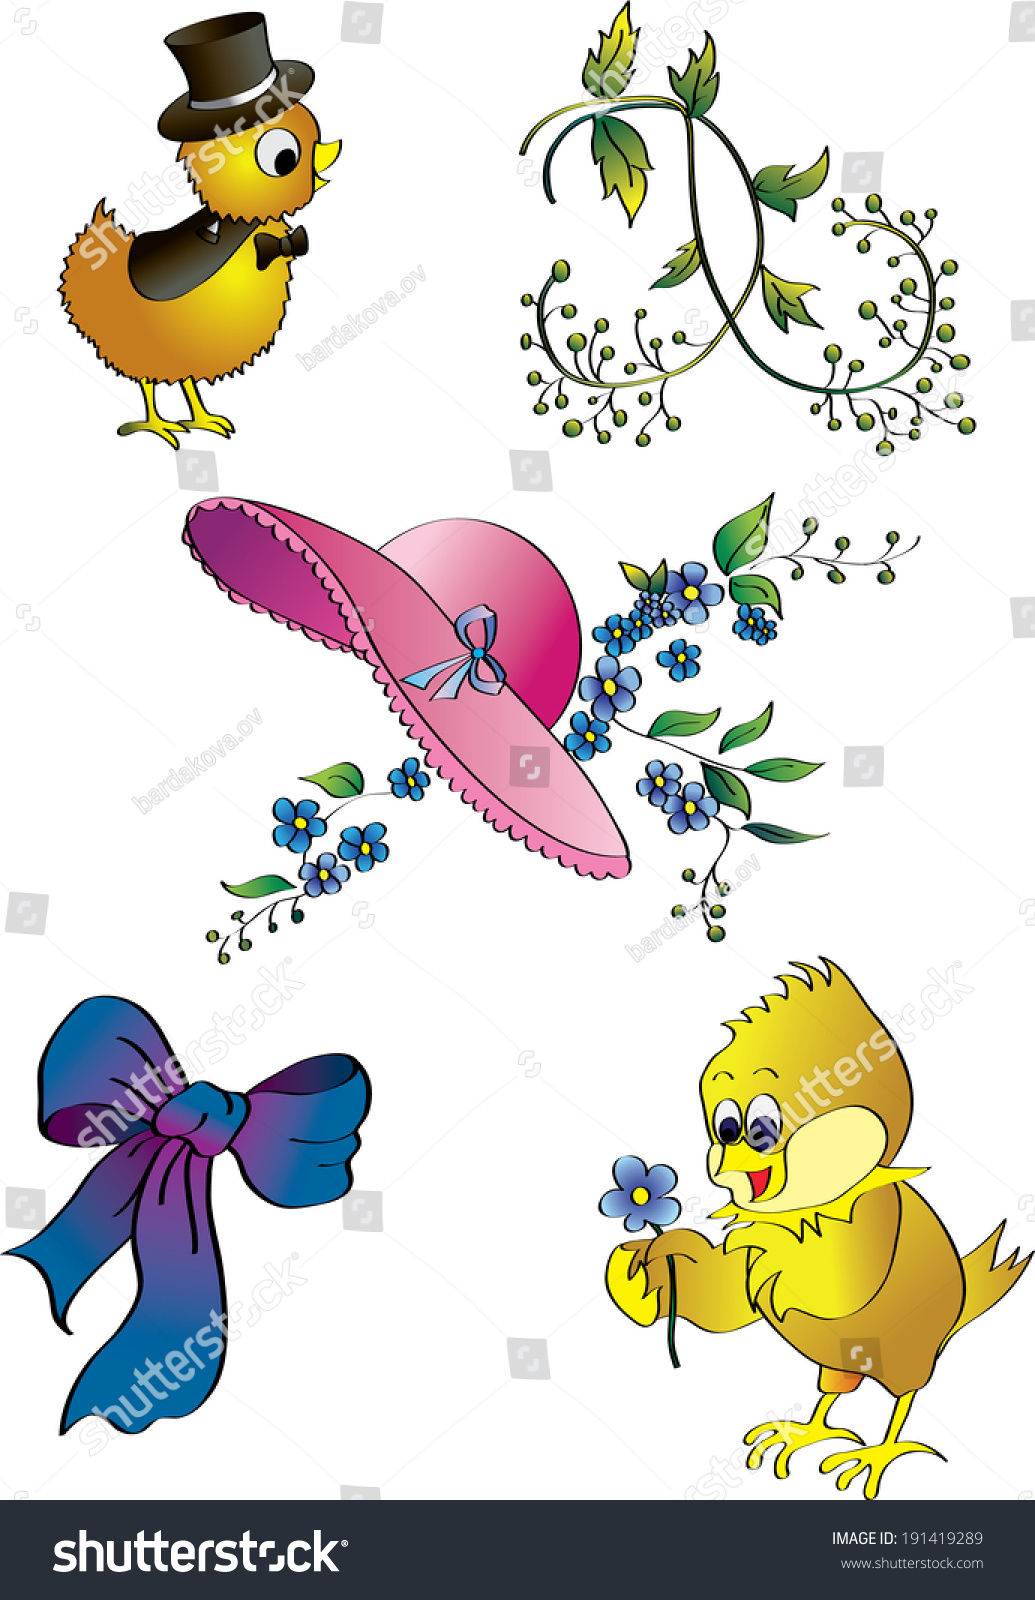 Clip Art Spring Flowers Chickens Stock Illustration 191419289